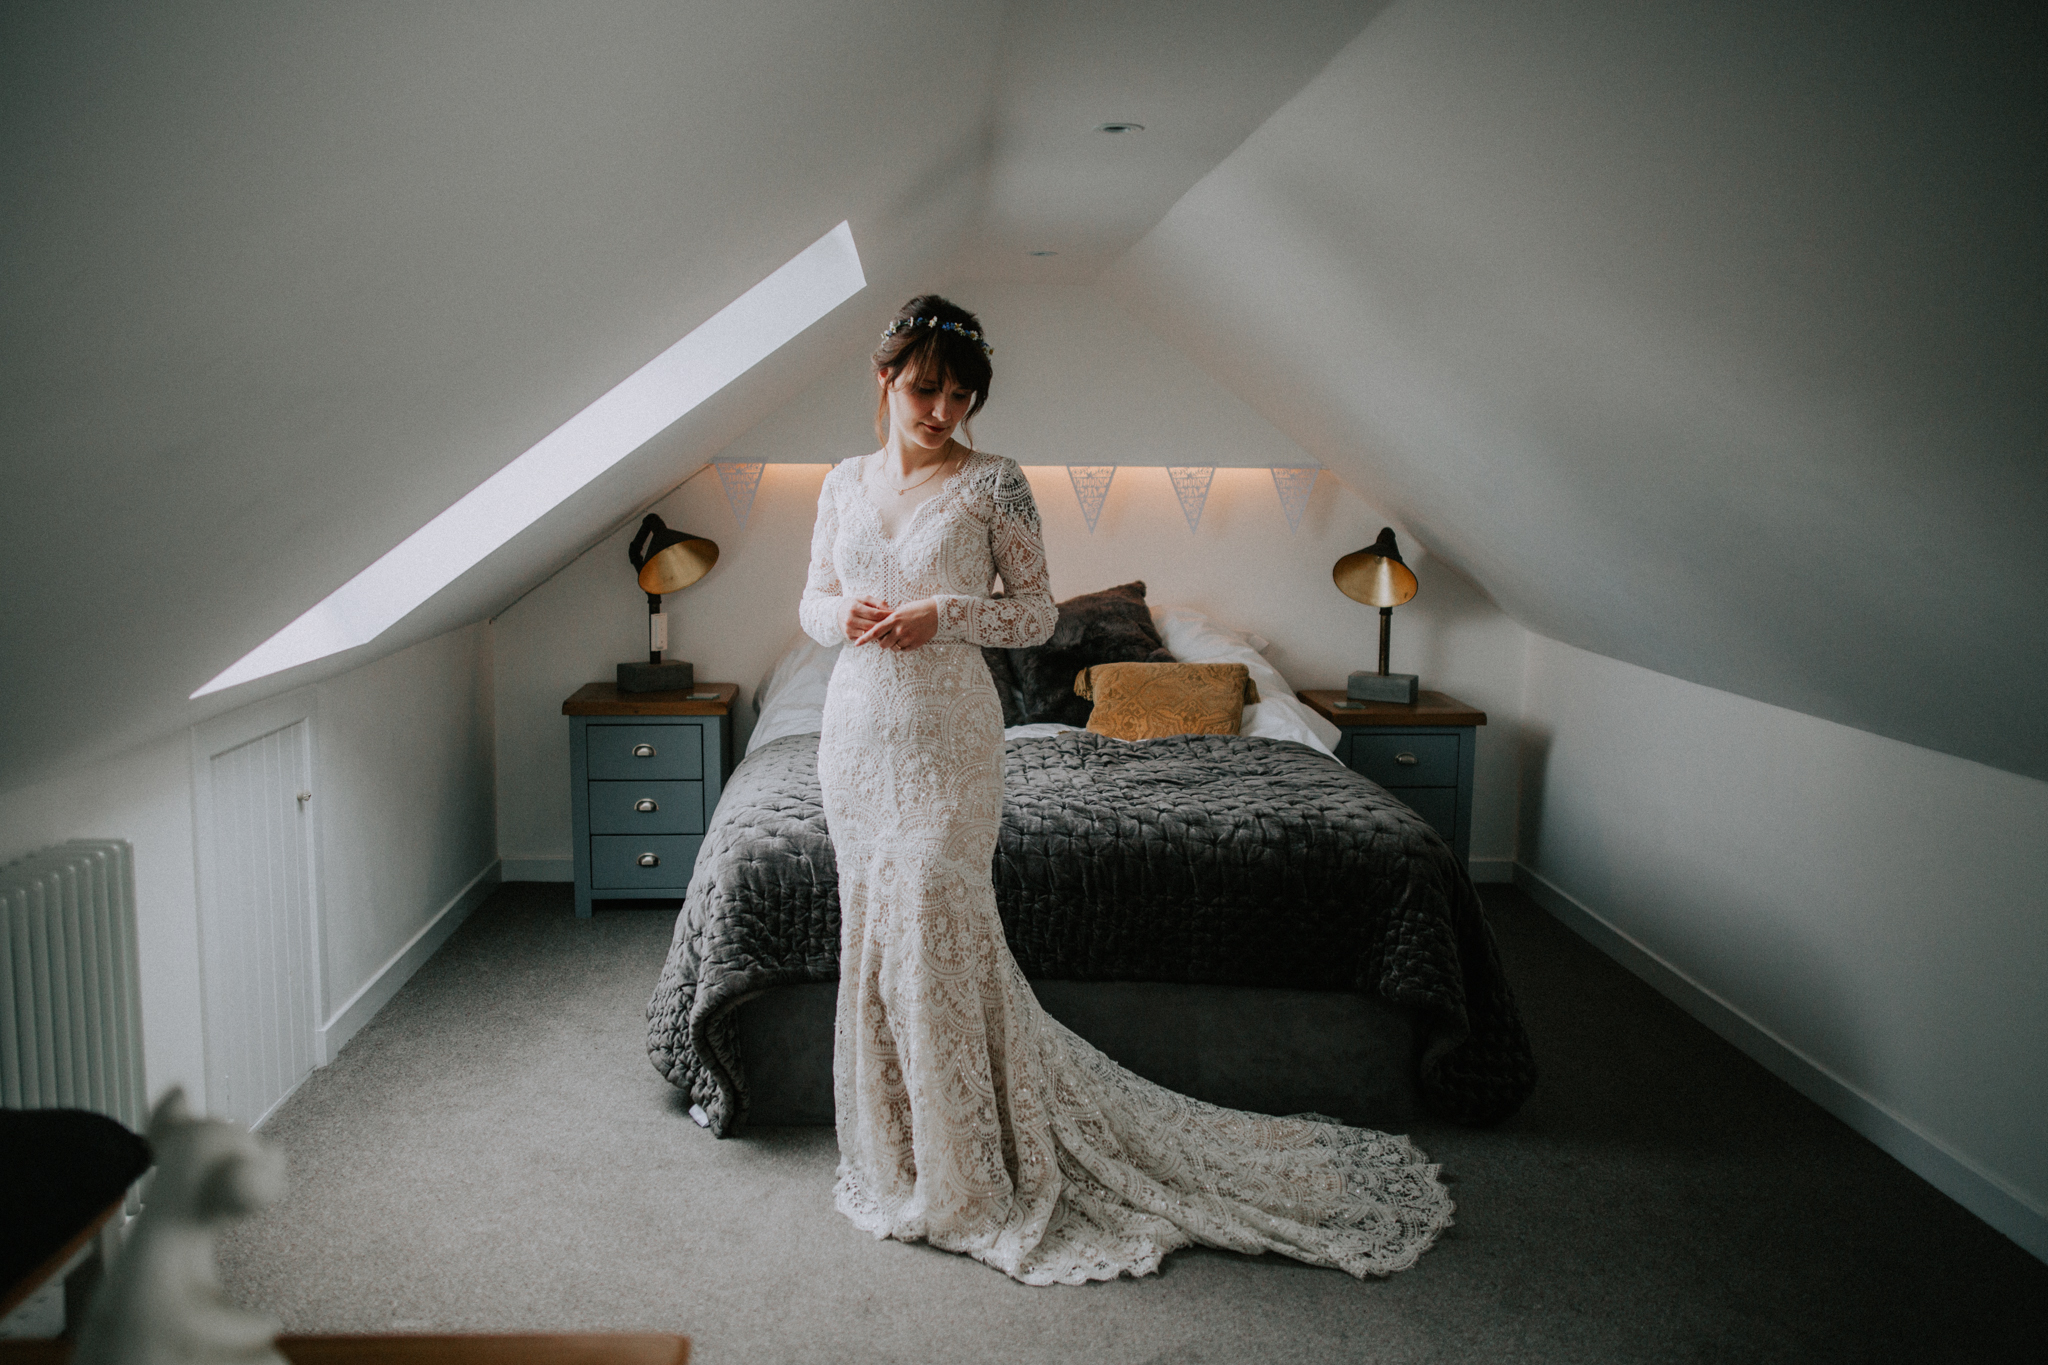 Indoor bridal portrait before the wedding ceremony